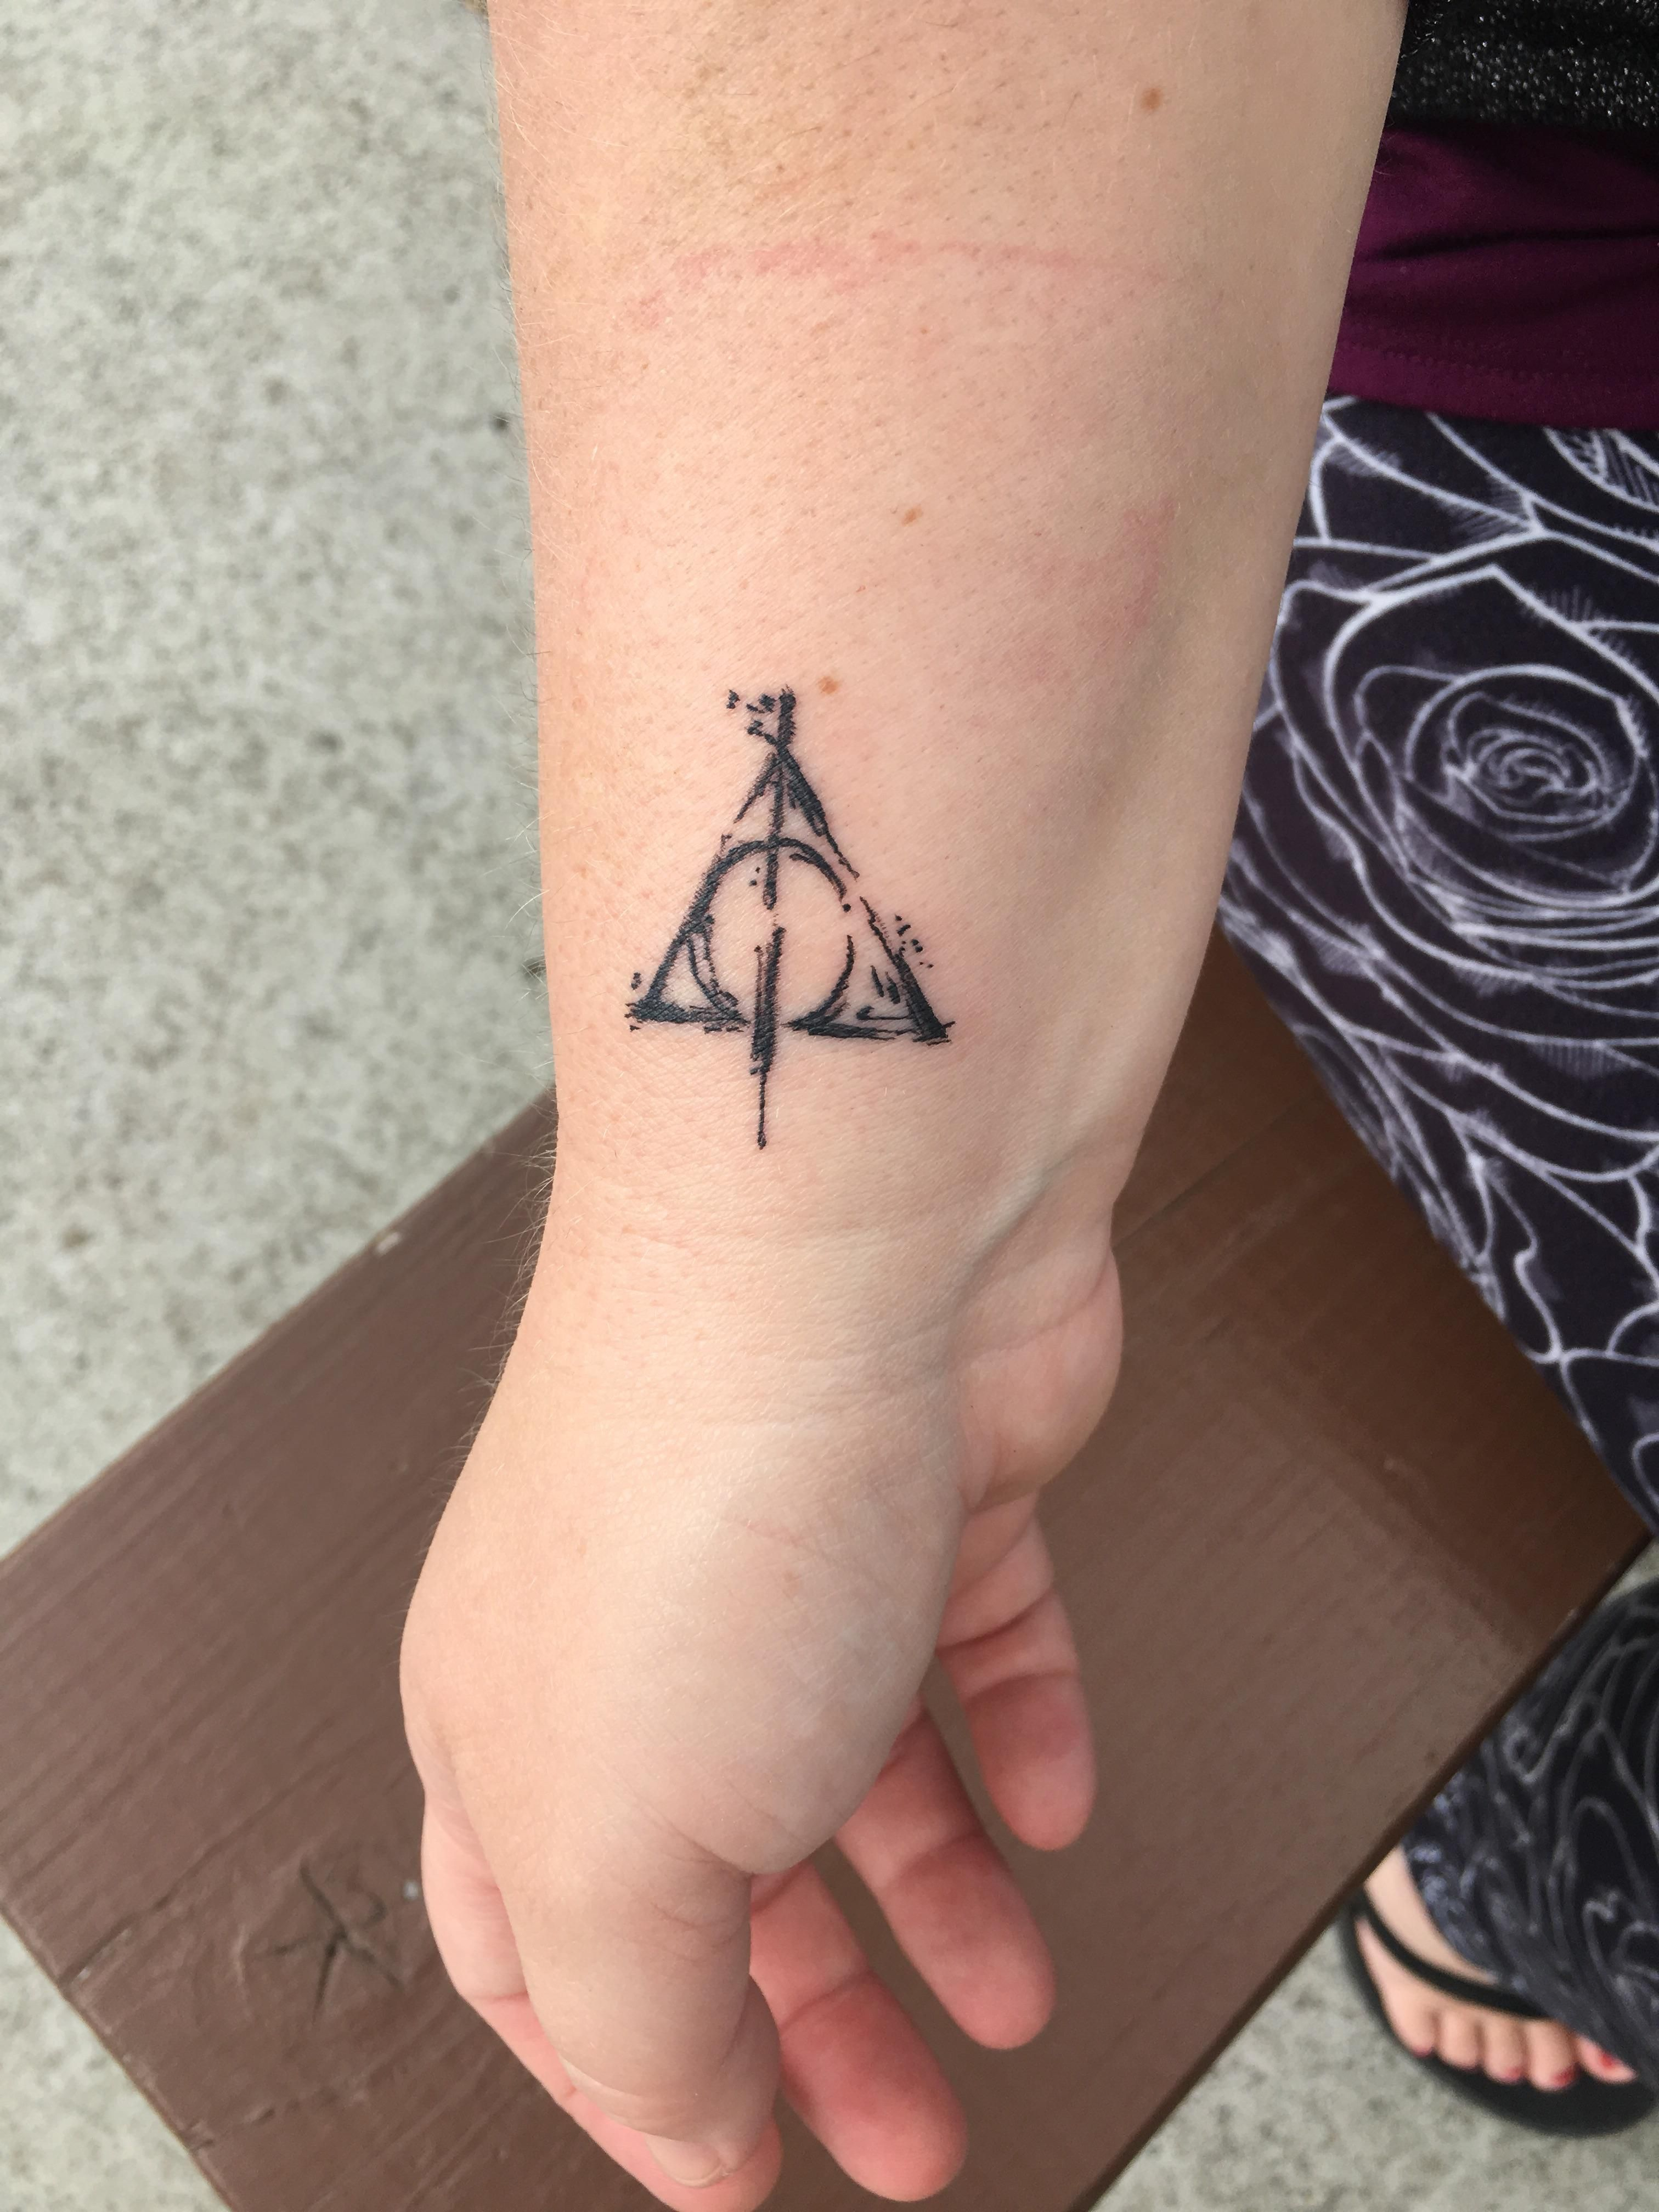 Deathly Hallows By Emily At Five Star Tattoo Co In Battle Ground